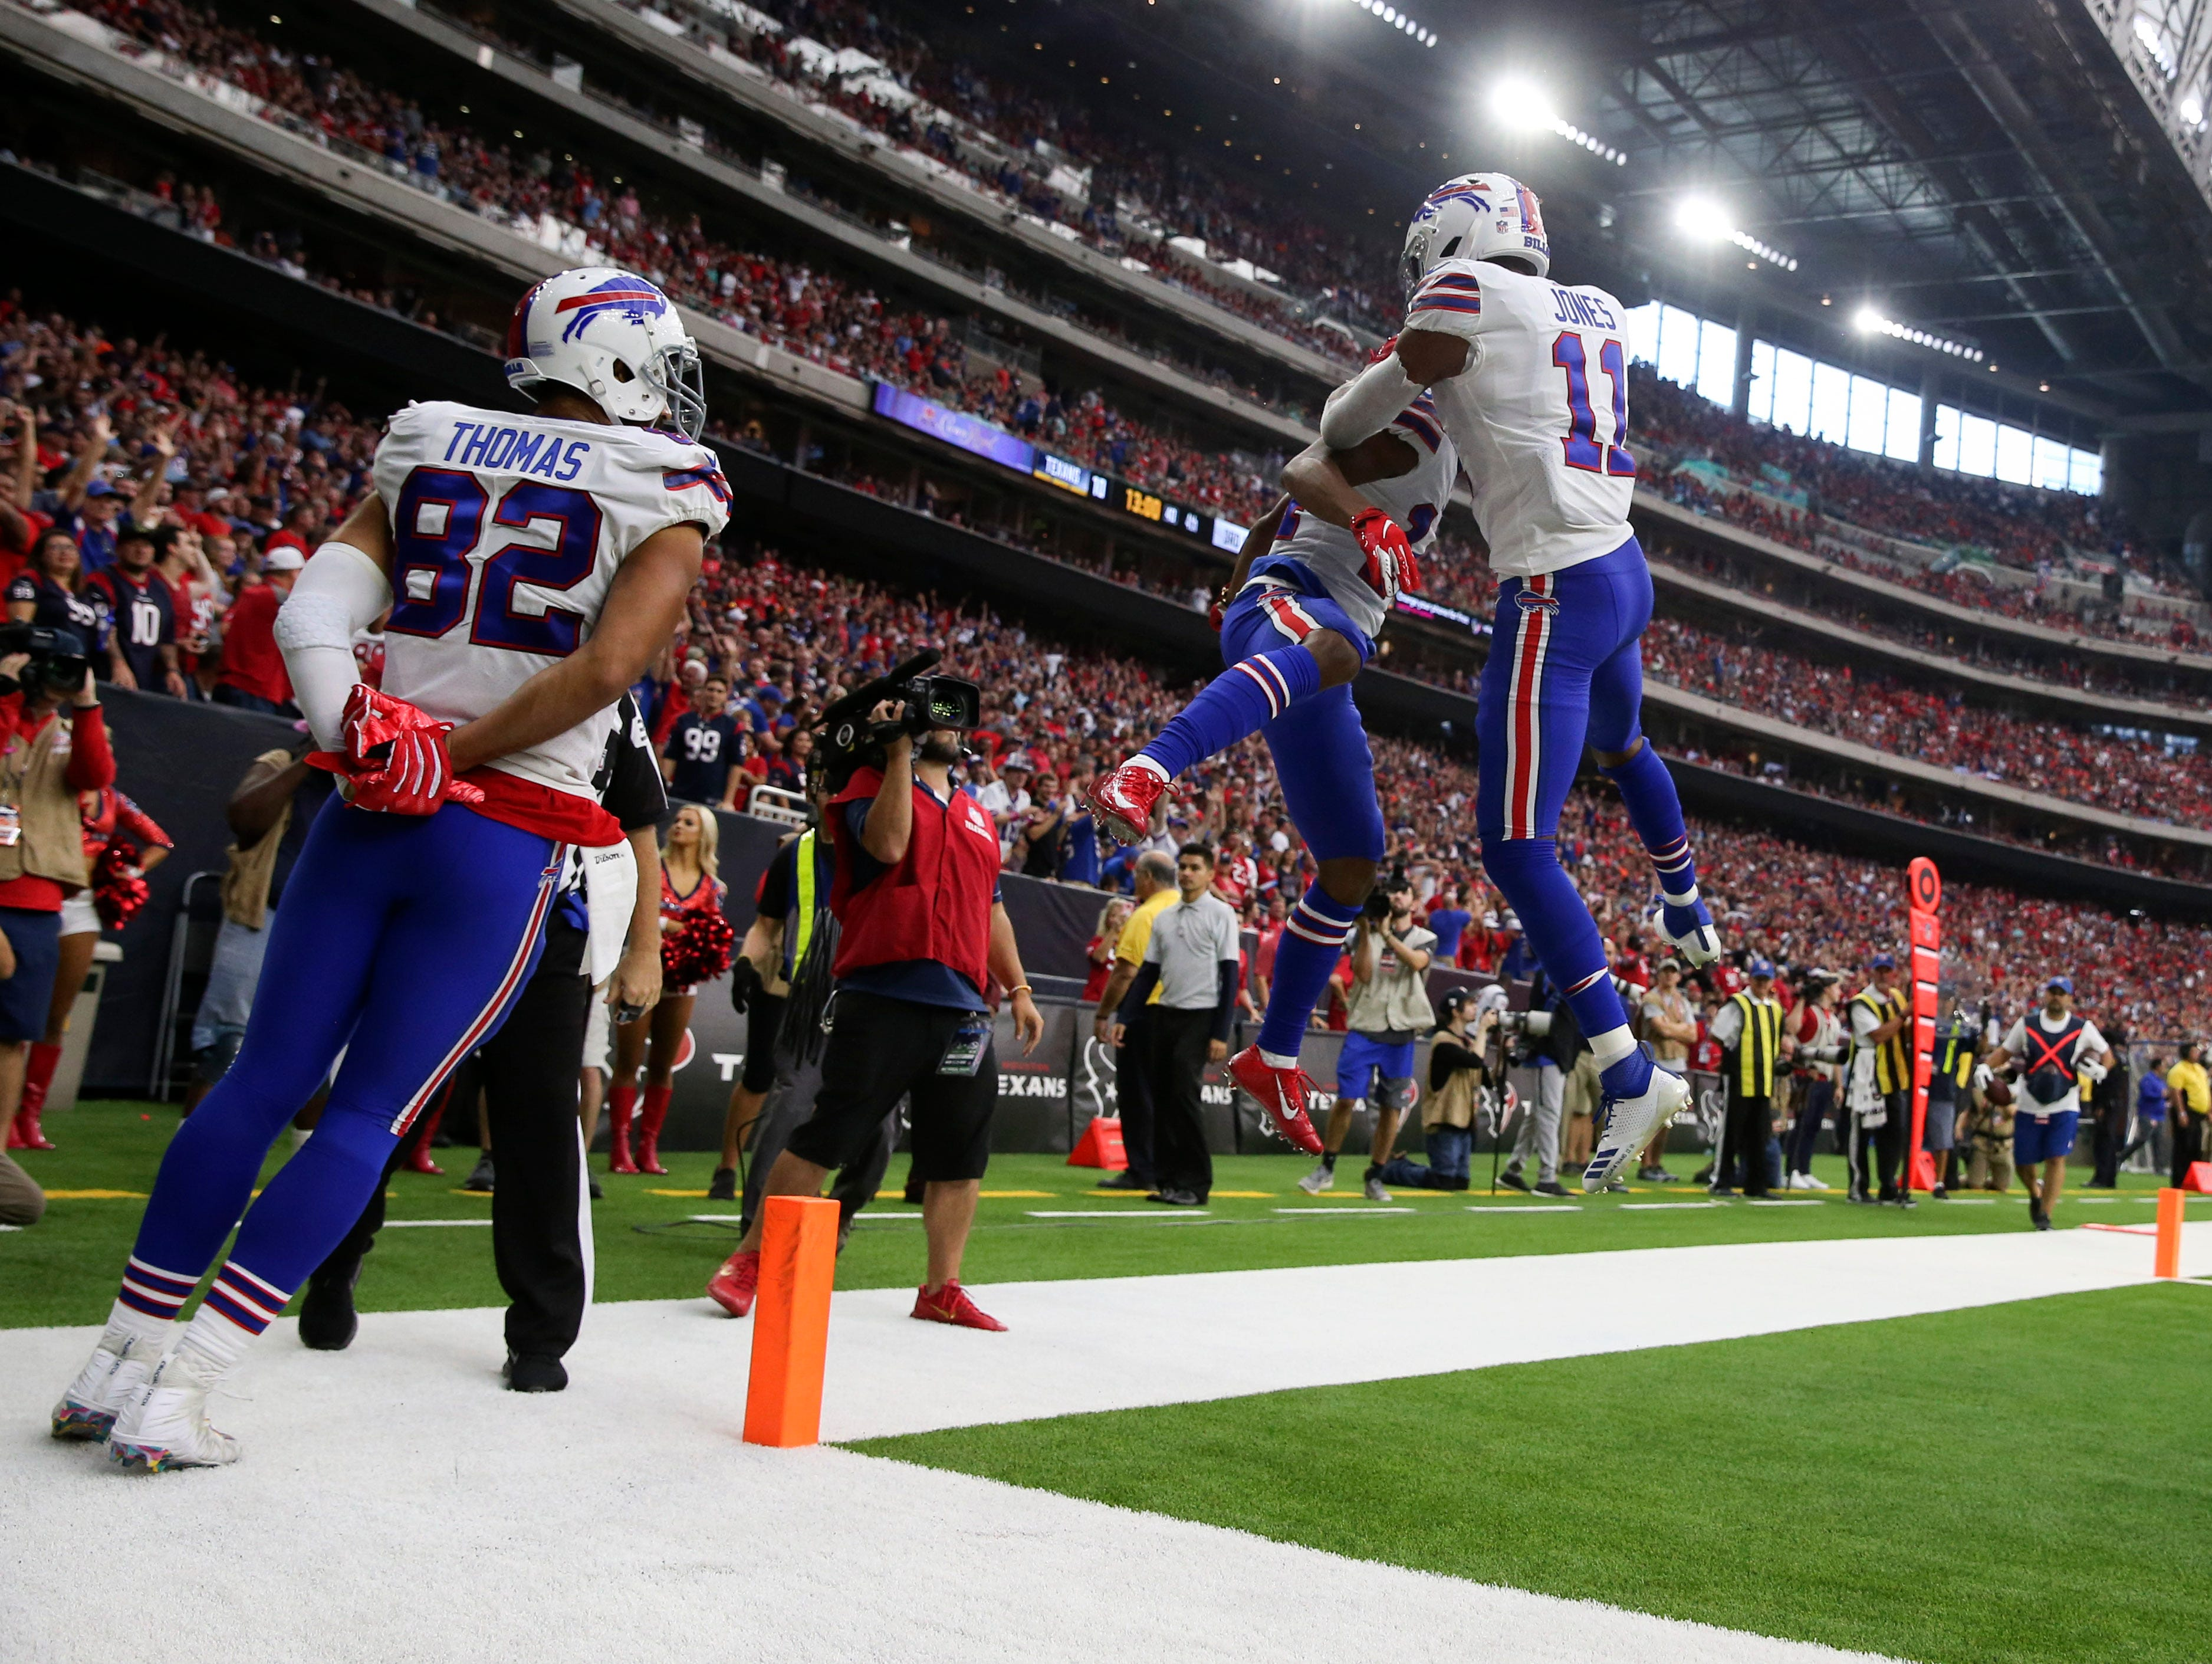 Oct 14, 2018; Houston, TX, USA; Buffalo Bills wide receiver Zay Jones (11) celebrates with Buffalo Bills wide receiver Ray-Ray McCloud (14) after catching a touchdown during the second half at NRG Stadium. Mandatory Credit: Kevin Jairaj-USA TODAY Sports